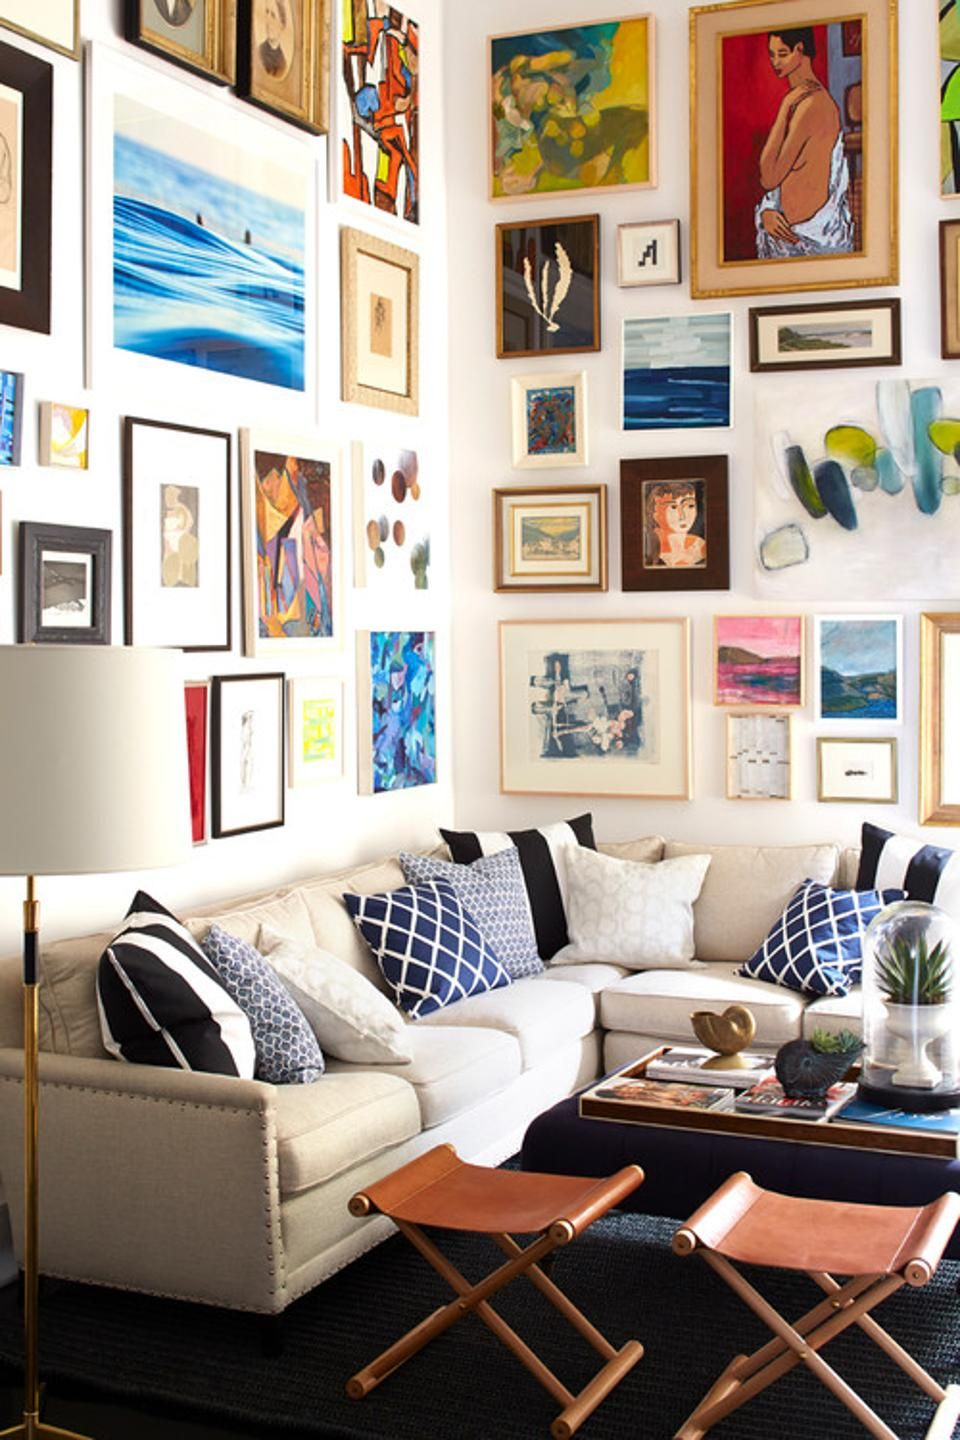 How To Design And Lay Out A Small Living Room Small Living